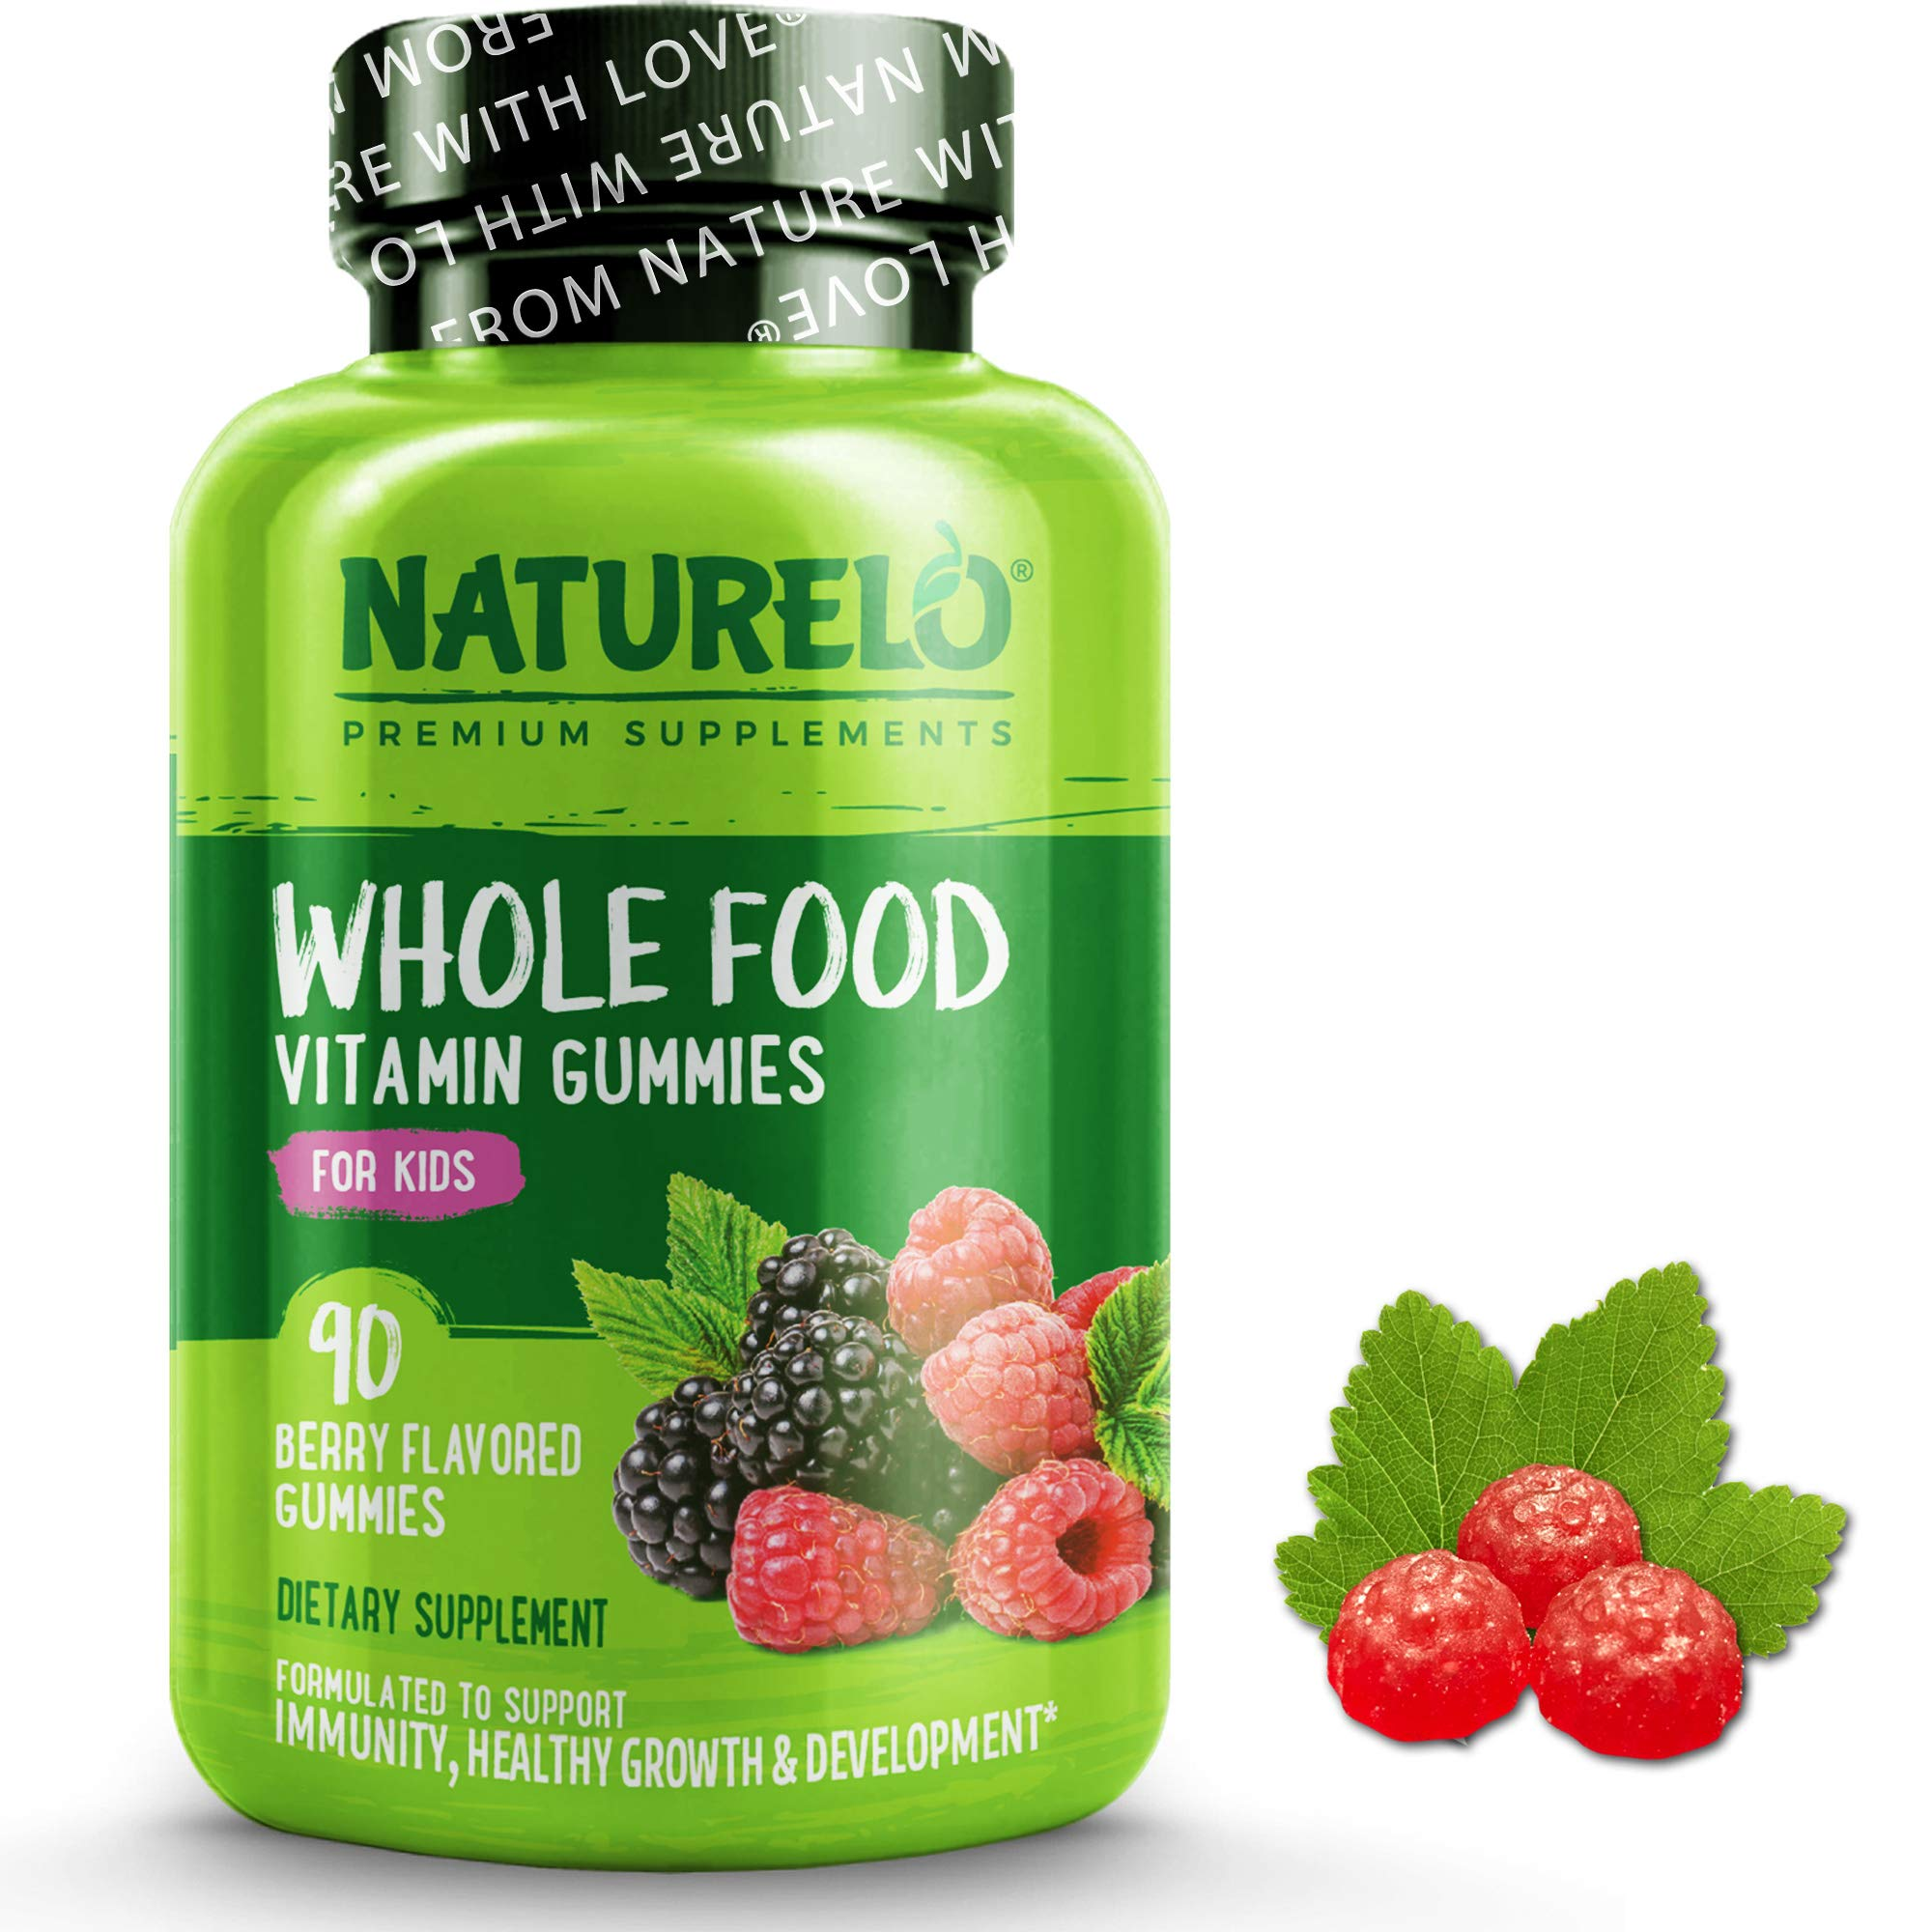 NATURELO Whole Food Vitamin Gummies for Kids - Best of Maintaining Essential Nutrient Levels in Children - No GMOs - New Great Tasting Berry Flavour -120 Chewable Vegan Gums | 1-2 Month Supply